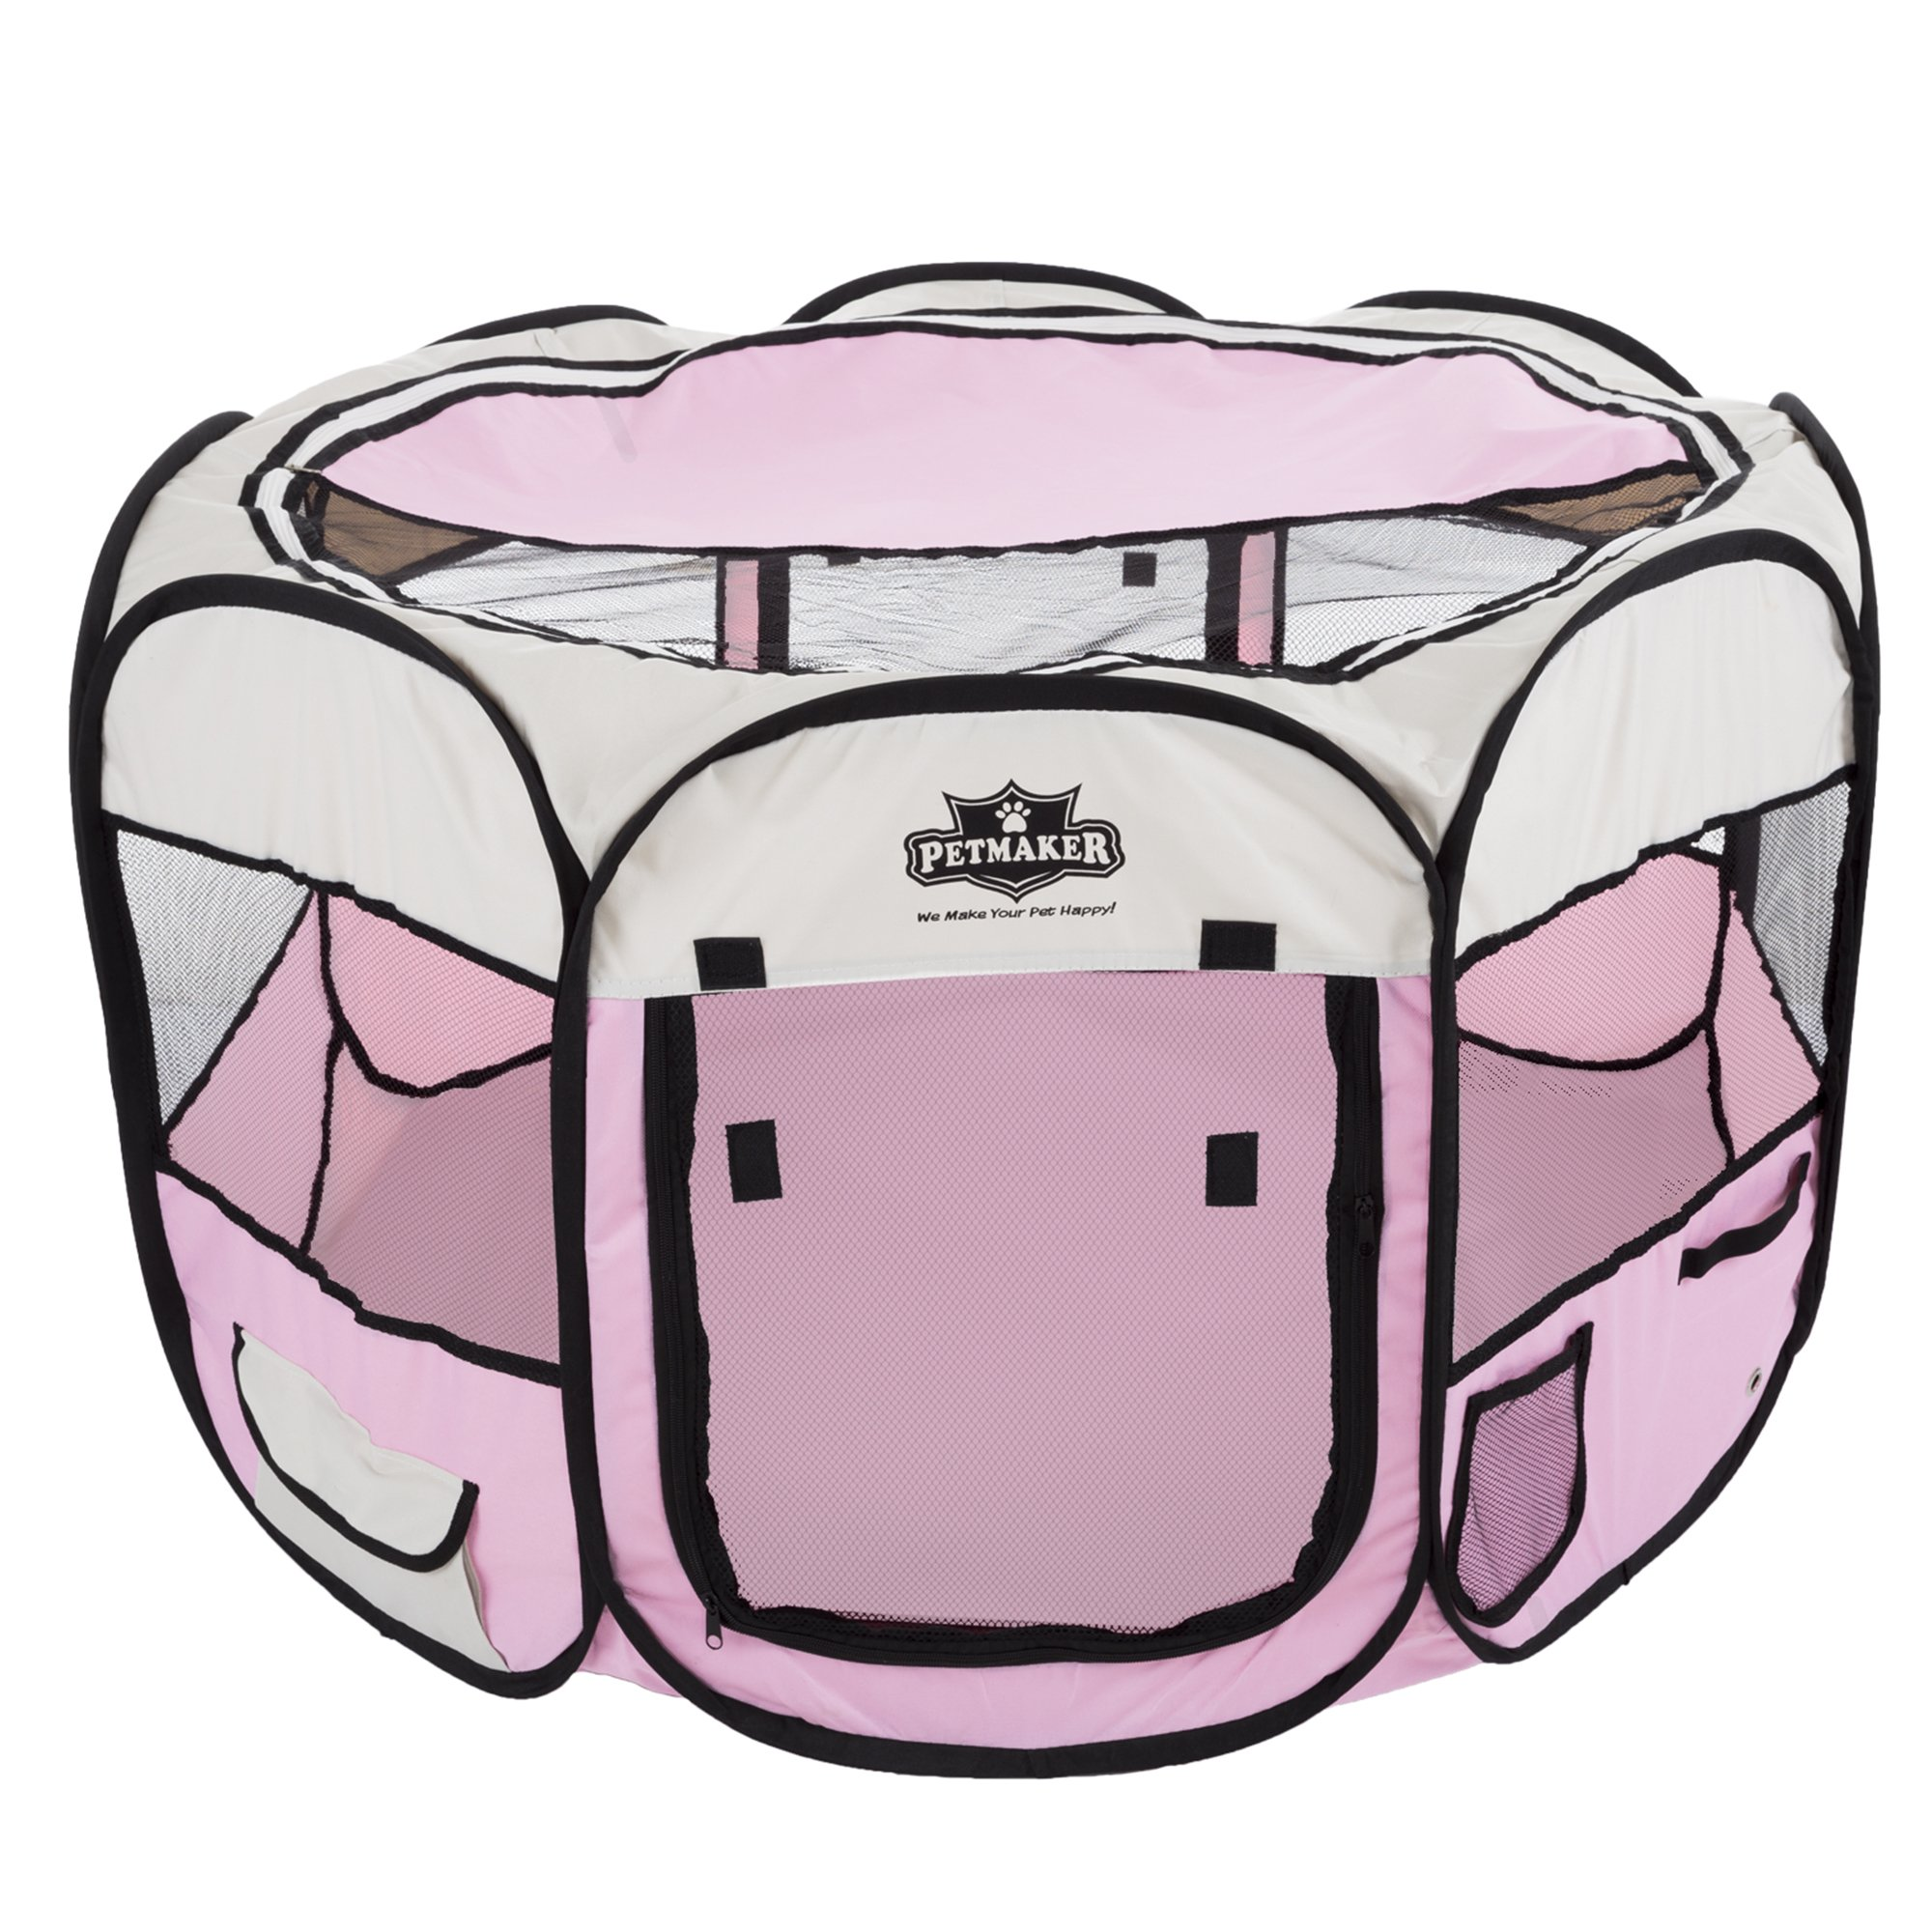 PETMAKER Portable Pop up Pet Play Pen with Carrying Bag 38in Diameter 24in Pink